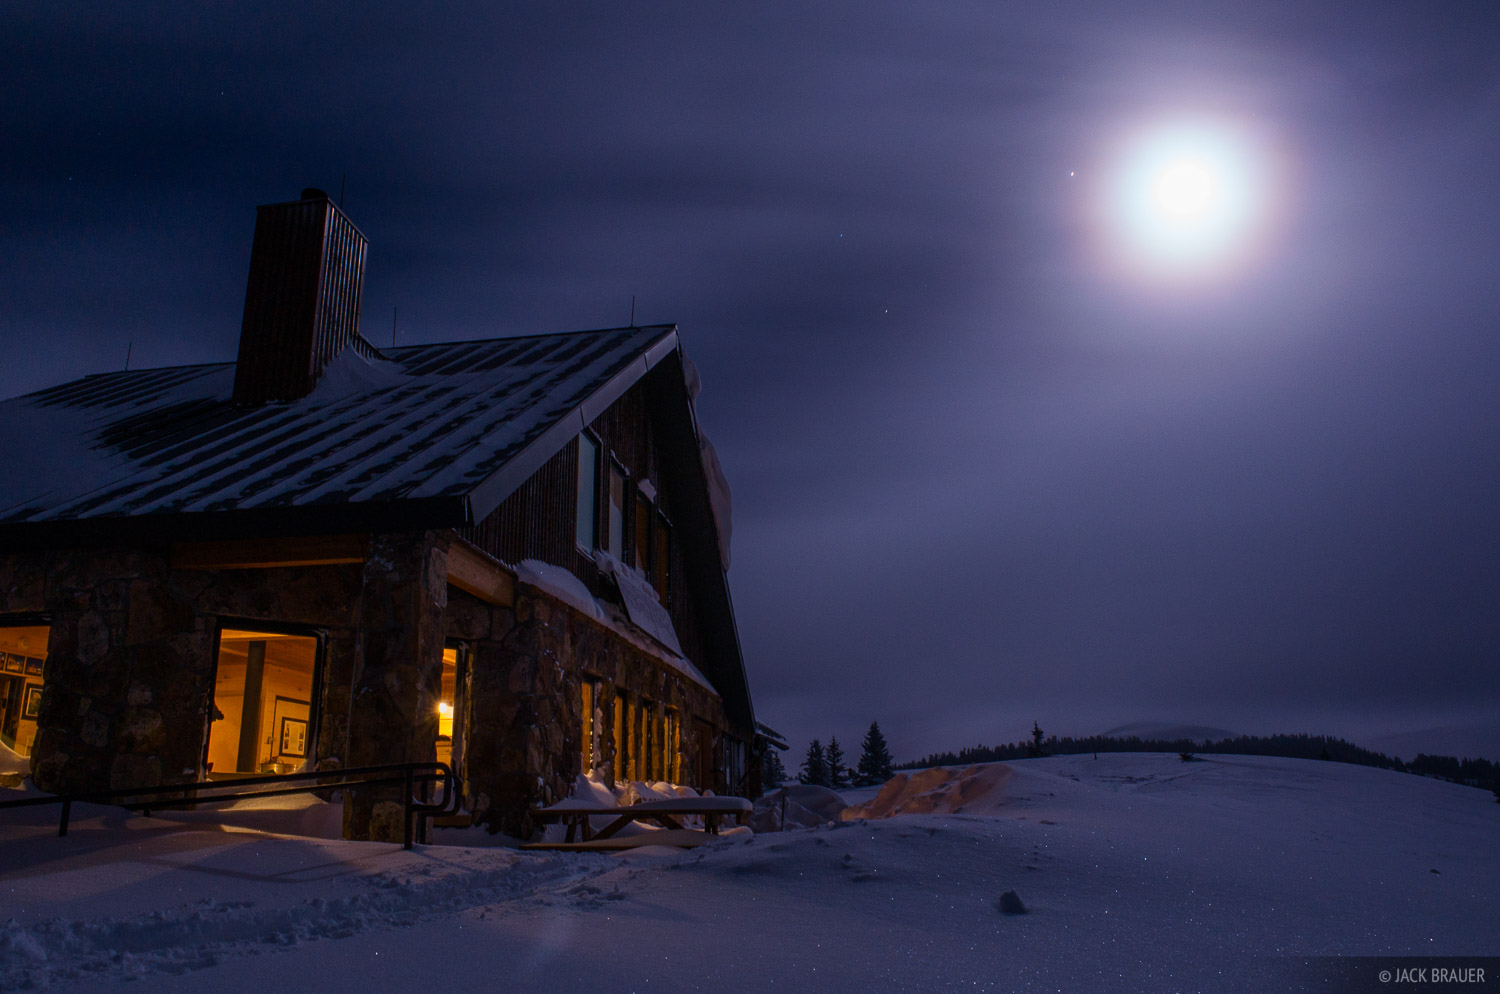 Colorado, Fowler Hilliard Hut, Gore Range, January, moonlight, hut. 10th Mountain Division, photo